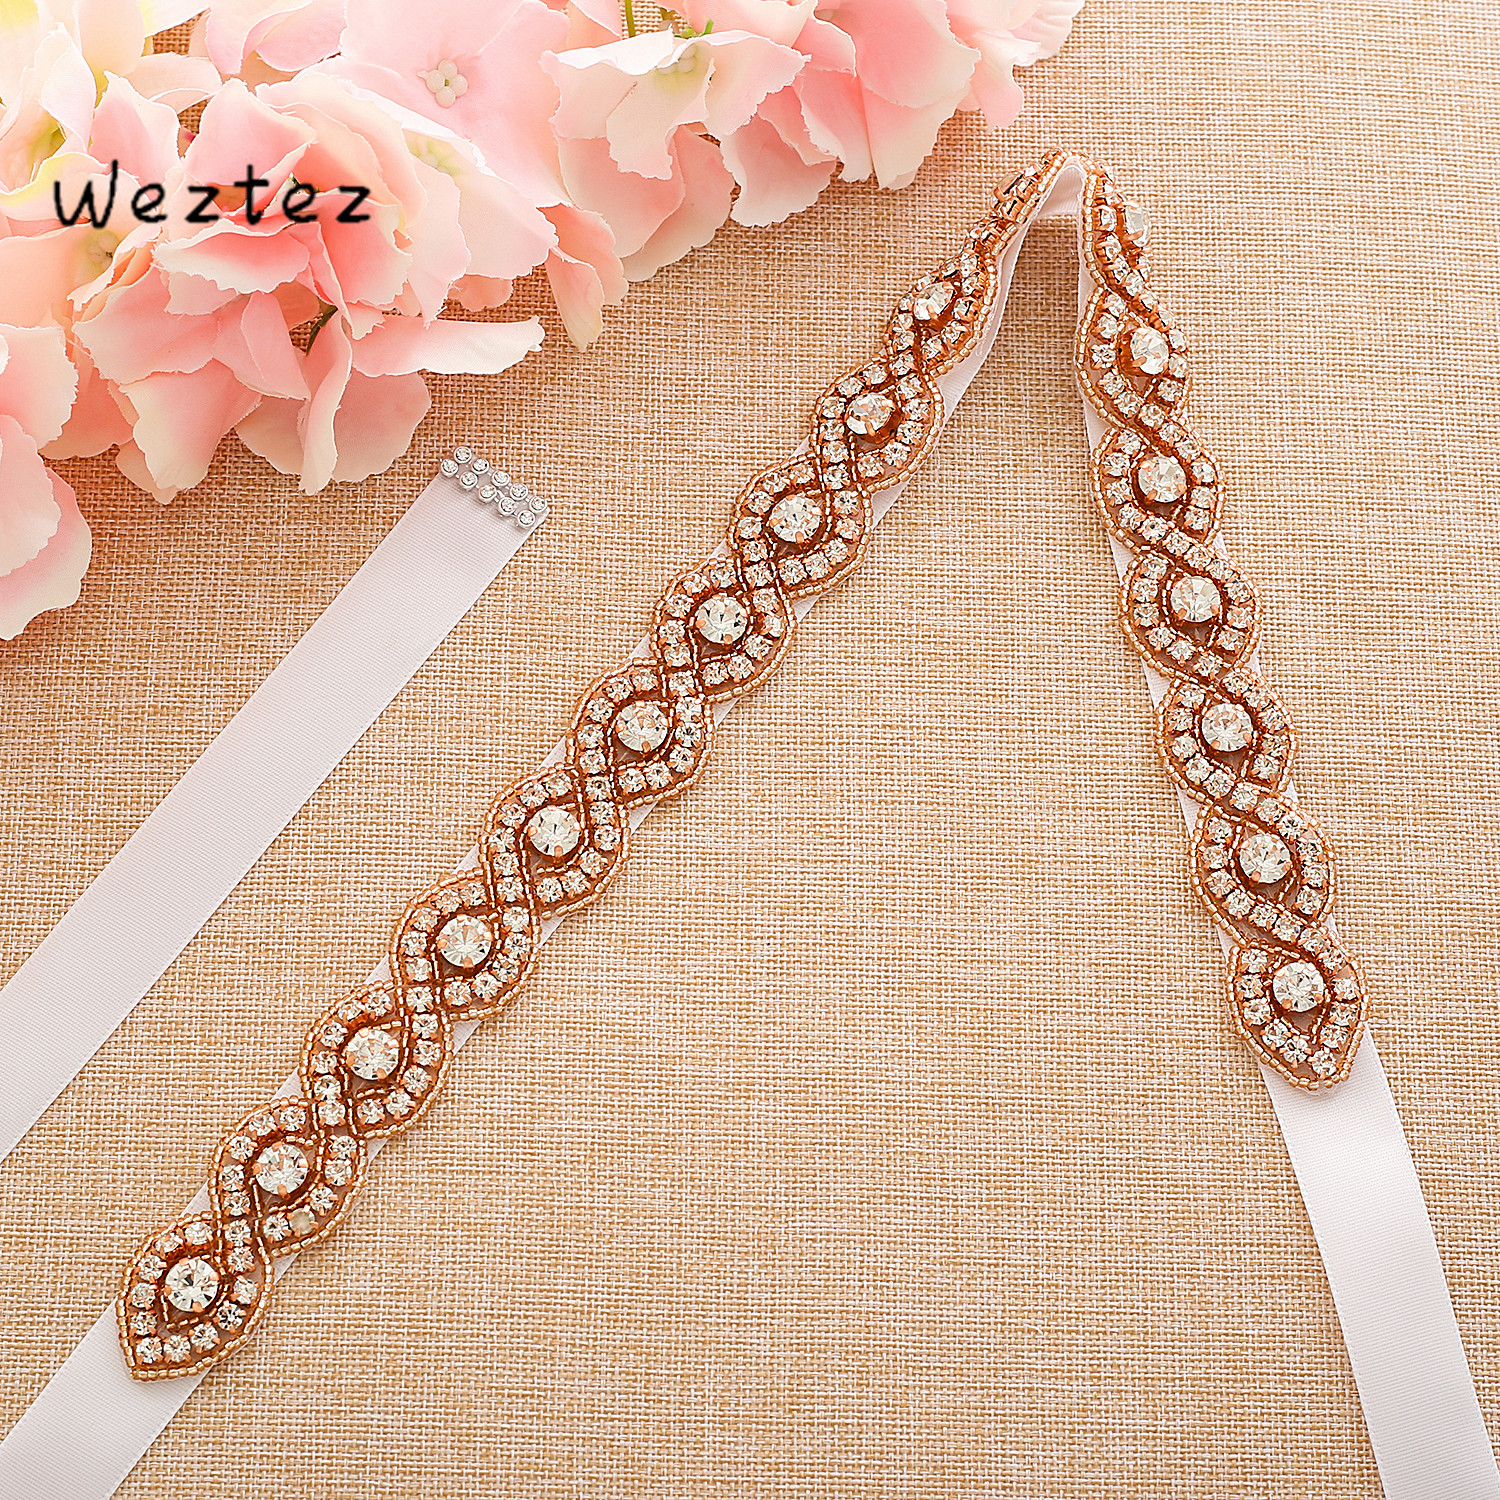 Rose Gold Crystal Bridal Sash Diamond Bridal Belt Rhinestones Wedding Dress Belt  For Women SD108RG